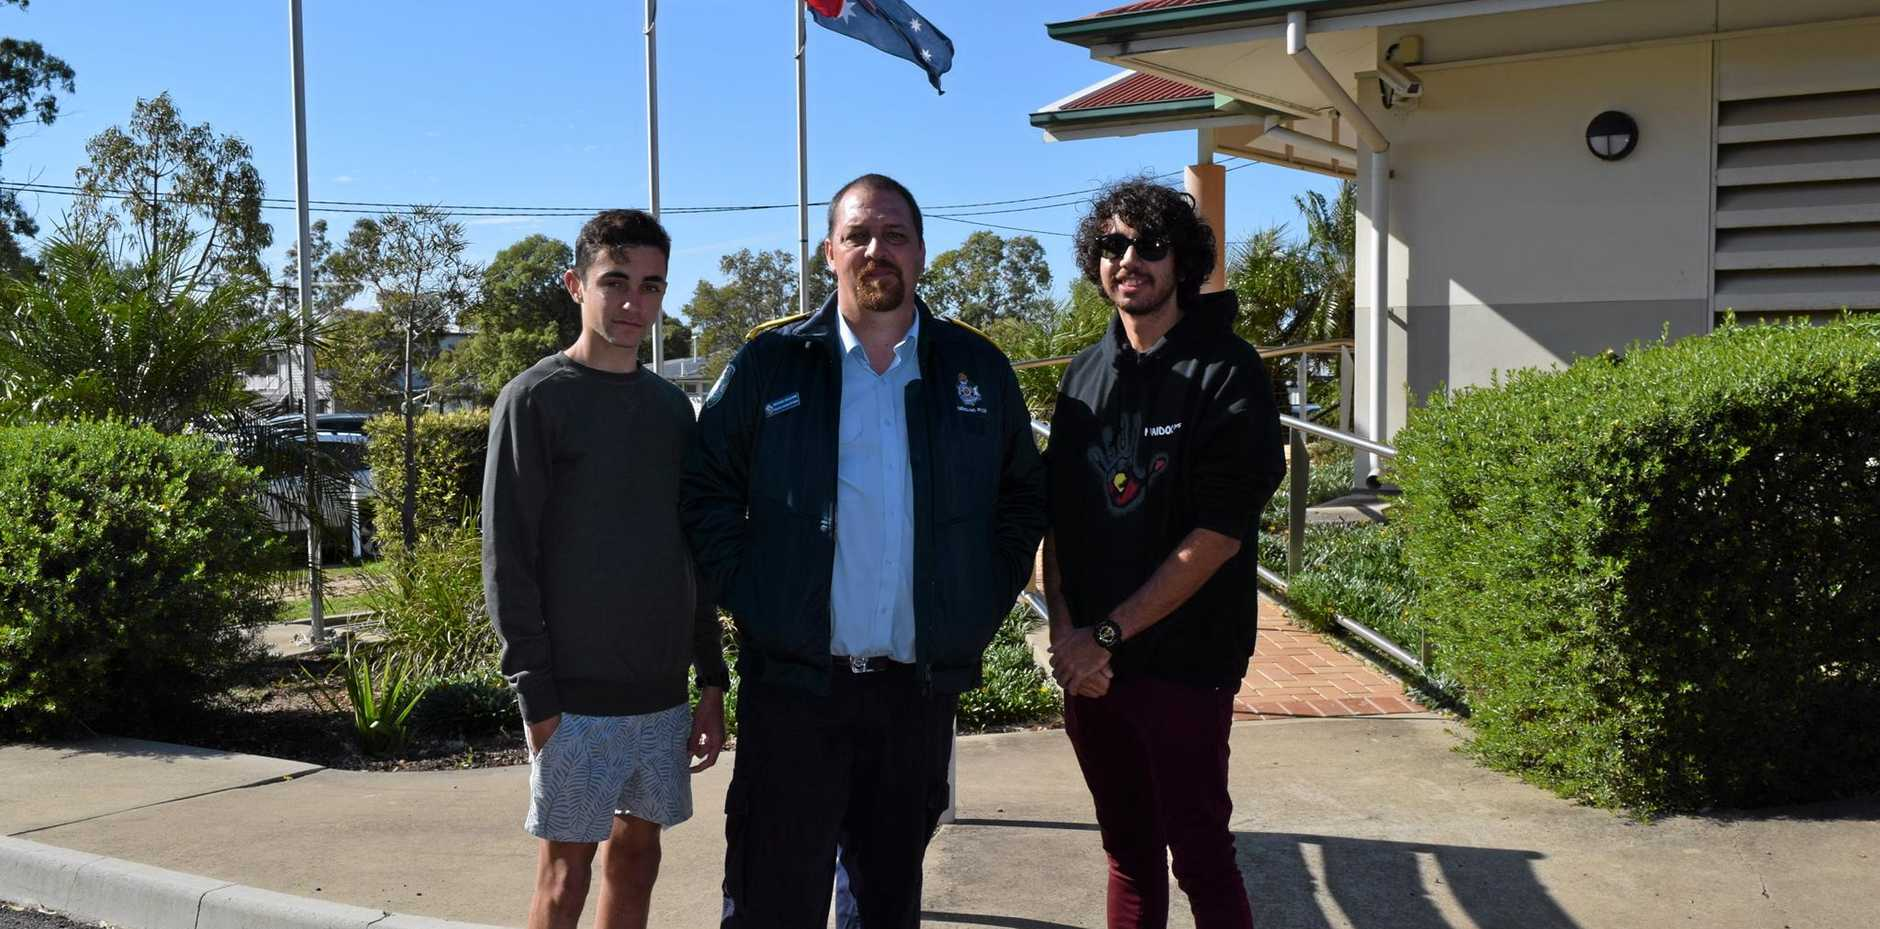 Tallis Landers, Michael McGuane and Lane Brookes attend the official flag raising ceremony as NAIDOC week begins.